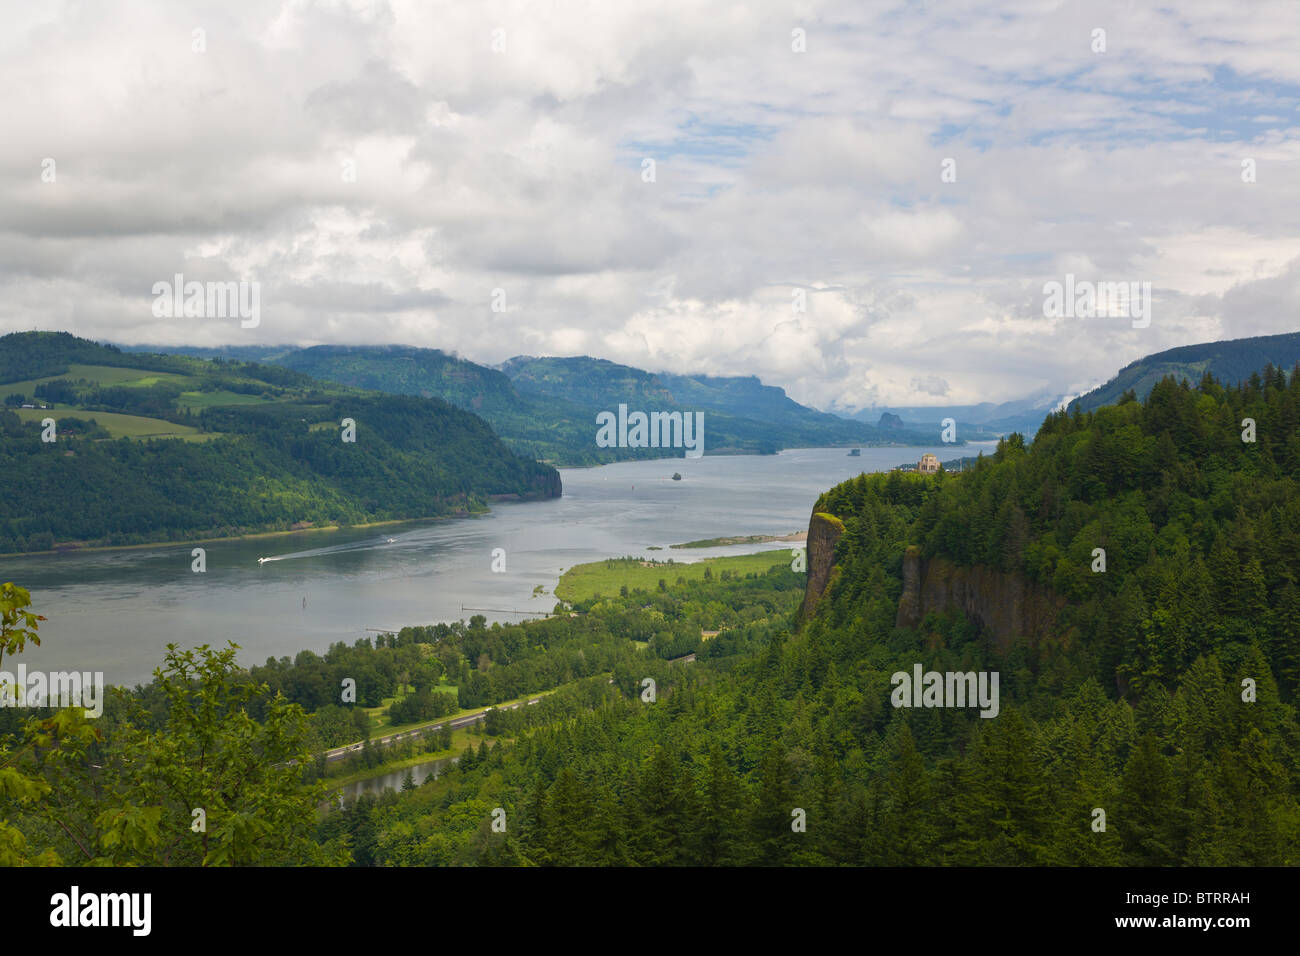 Overall view from above on the historic Columbia River Highway of the Columbia River Gorge National Scenic Area - Stock Image